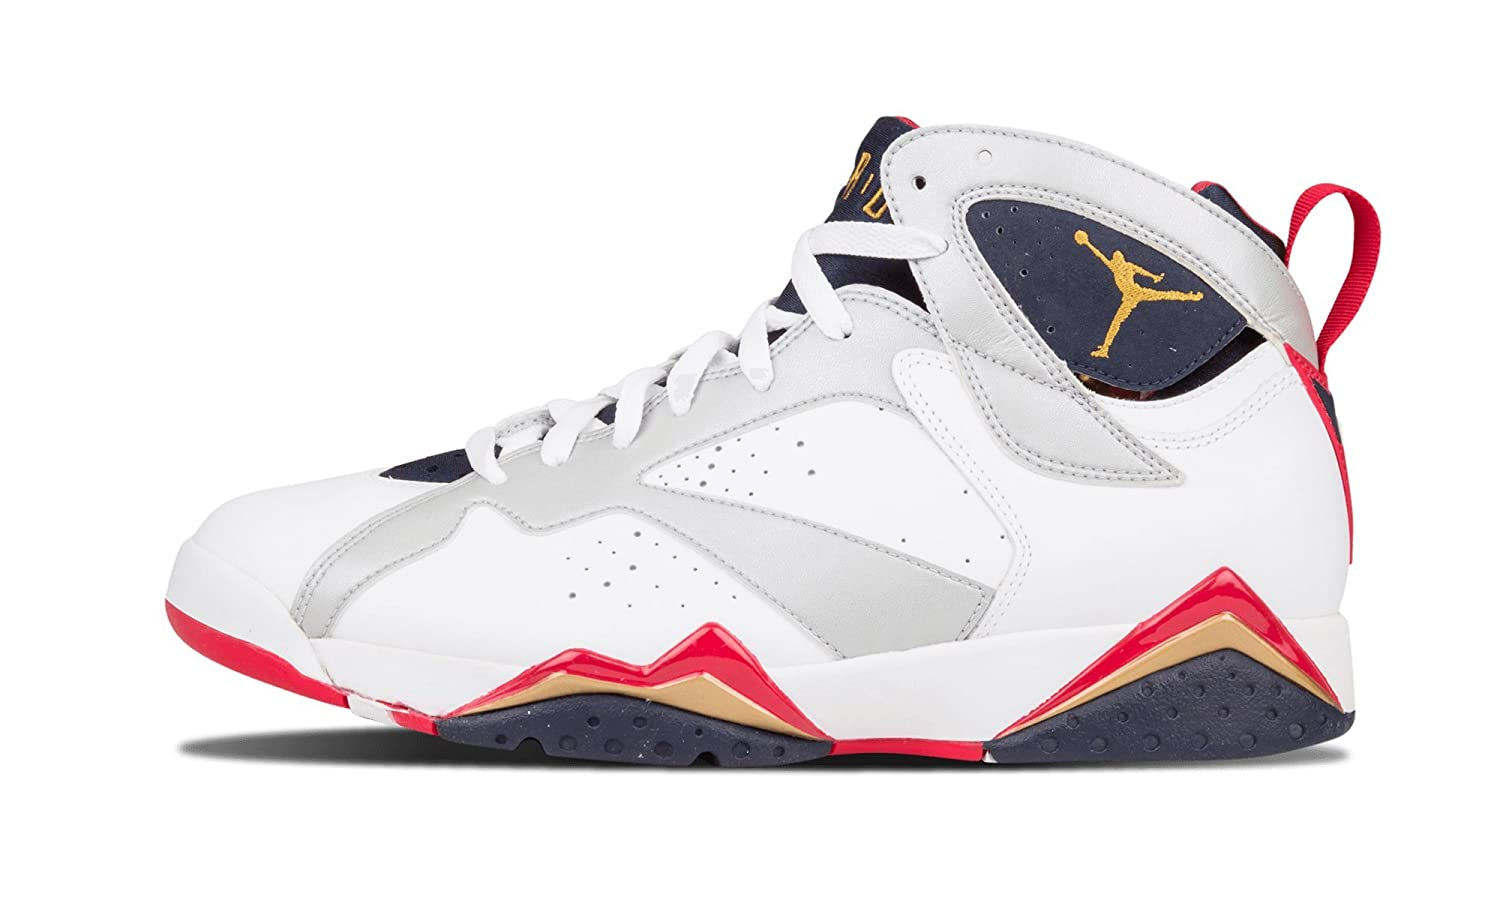 uk availability cce3c 28d78 NIKE Mens Air Jordan 7 Retro Olympic Leather Basketball Shoes